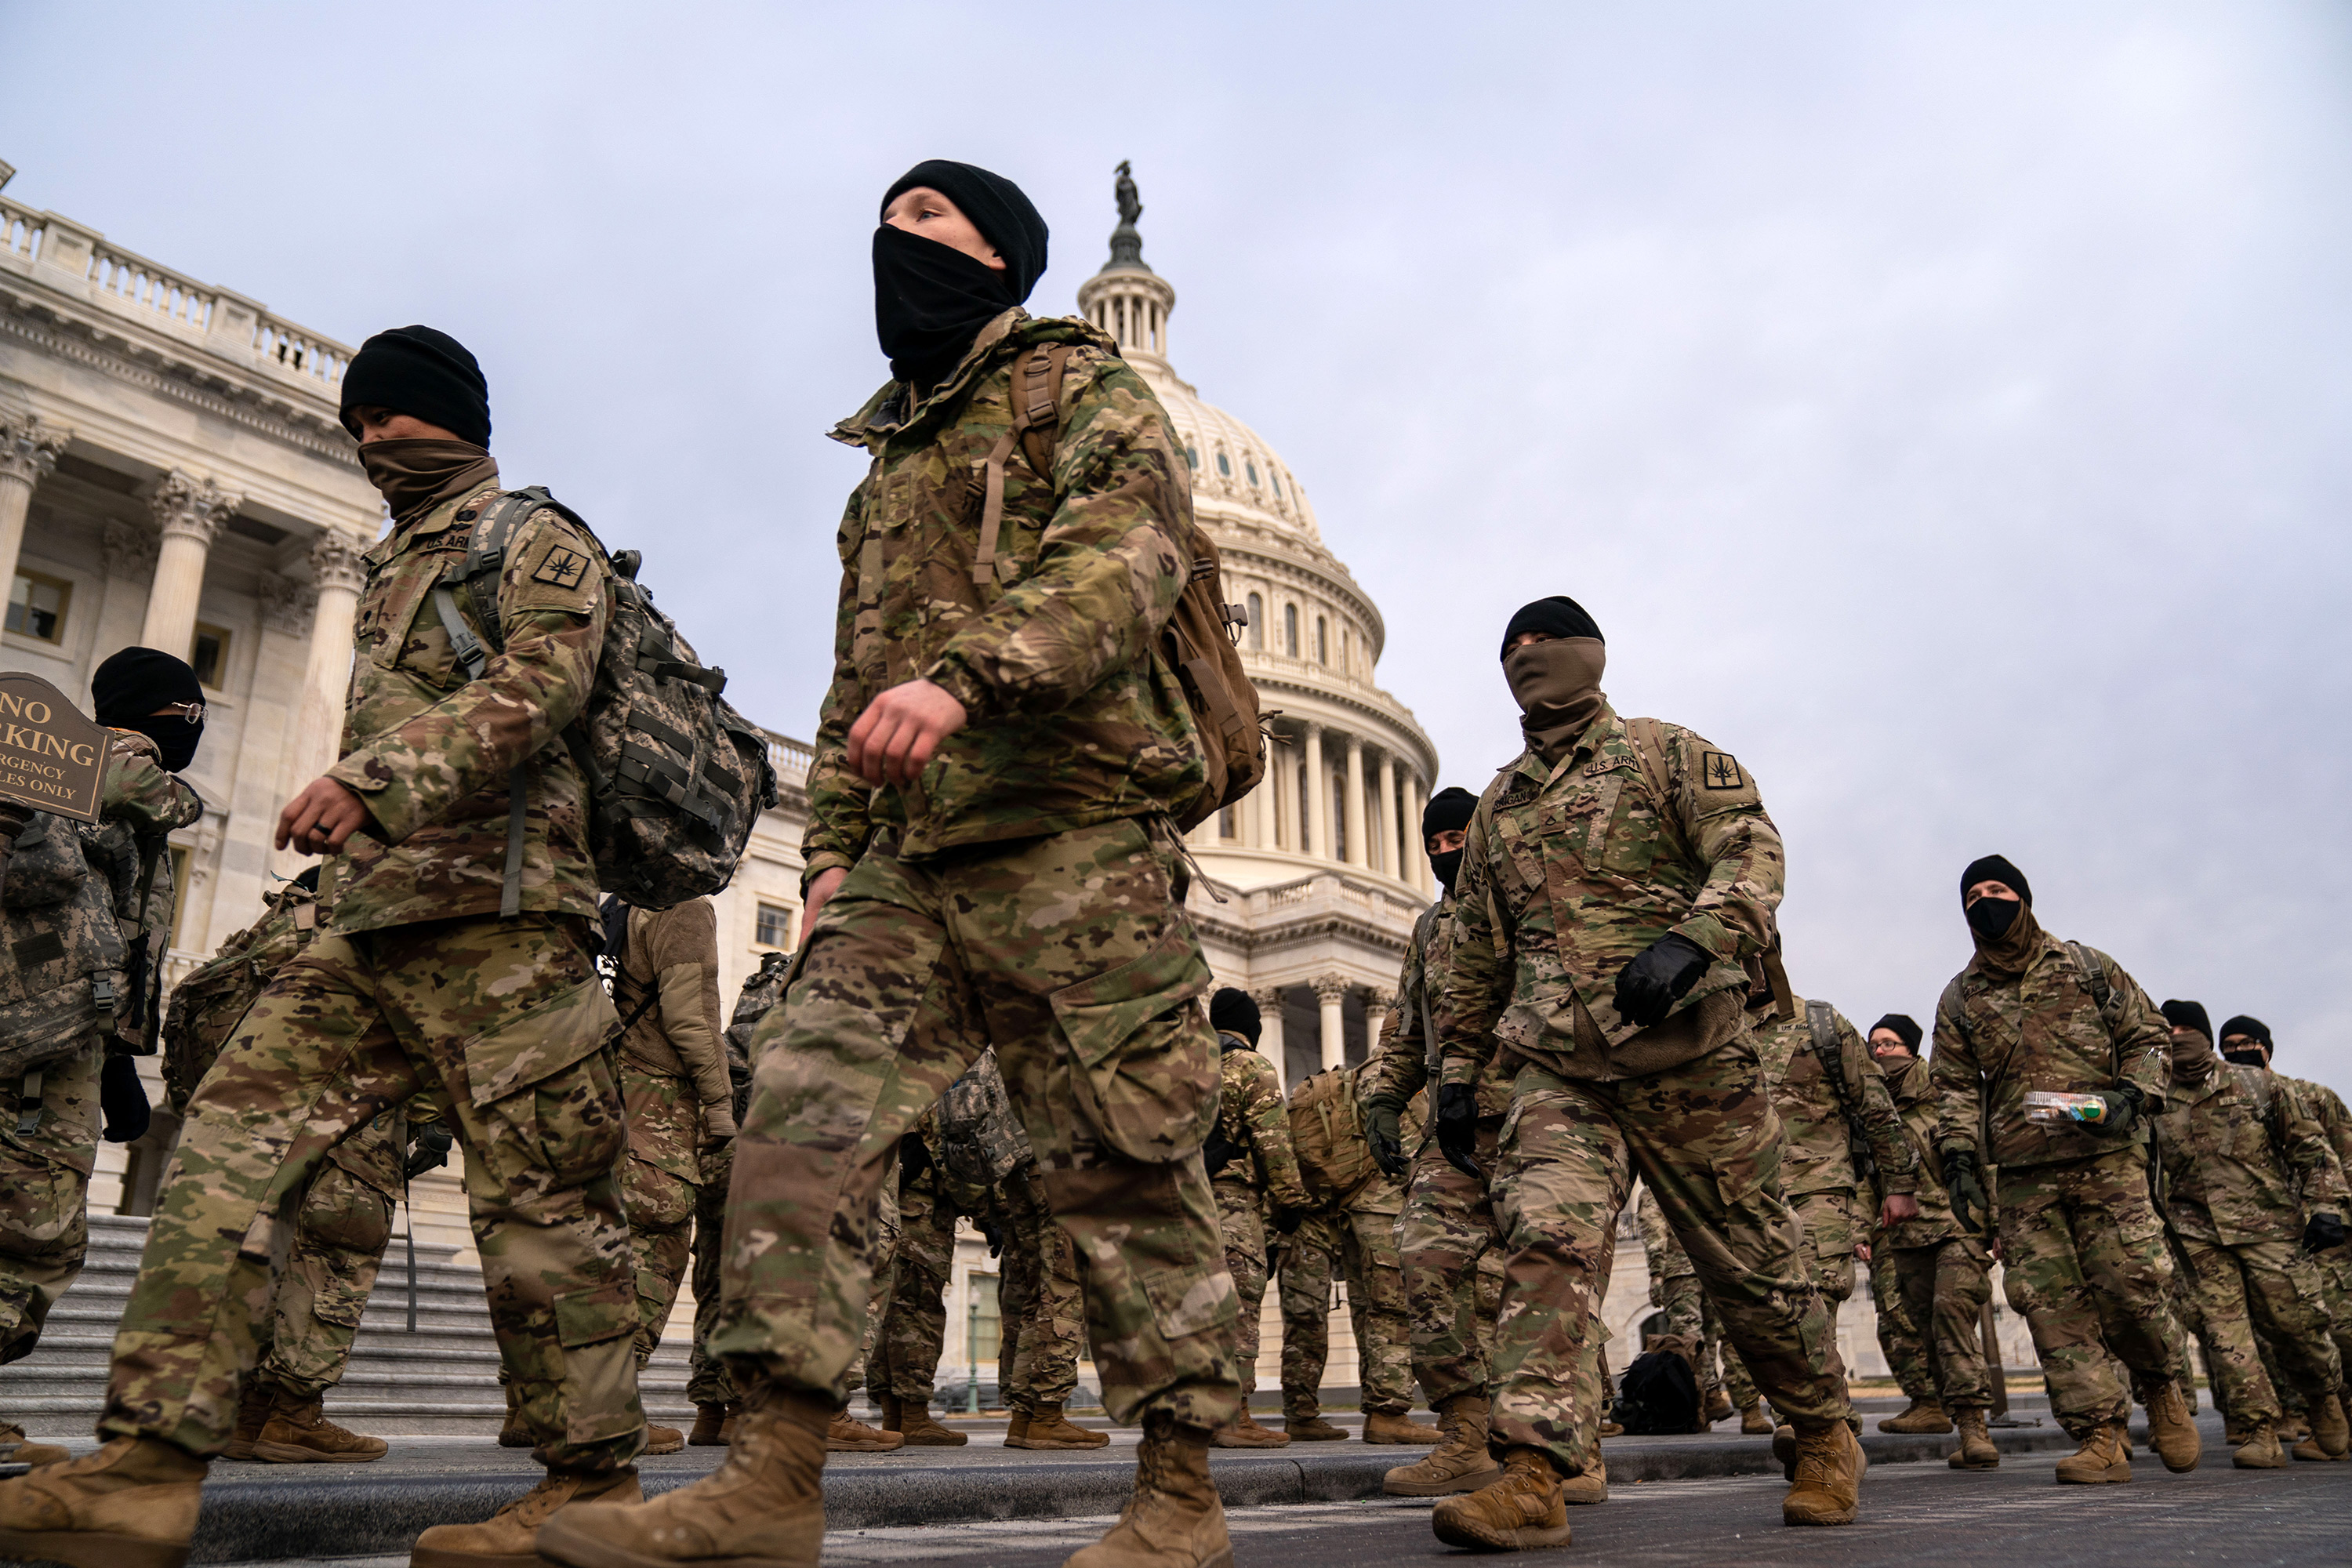 National Guard members are seen outside the US Capitol building on Monday, January 11 in Washington, DC.